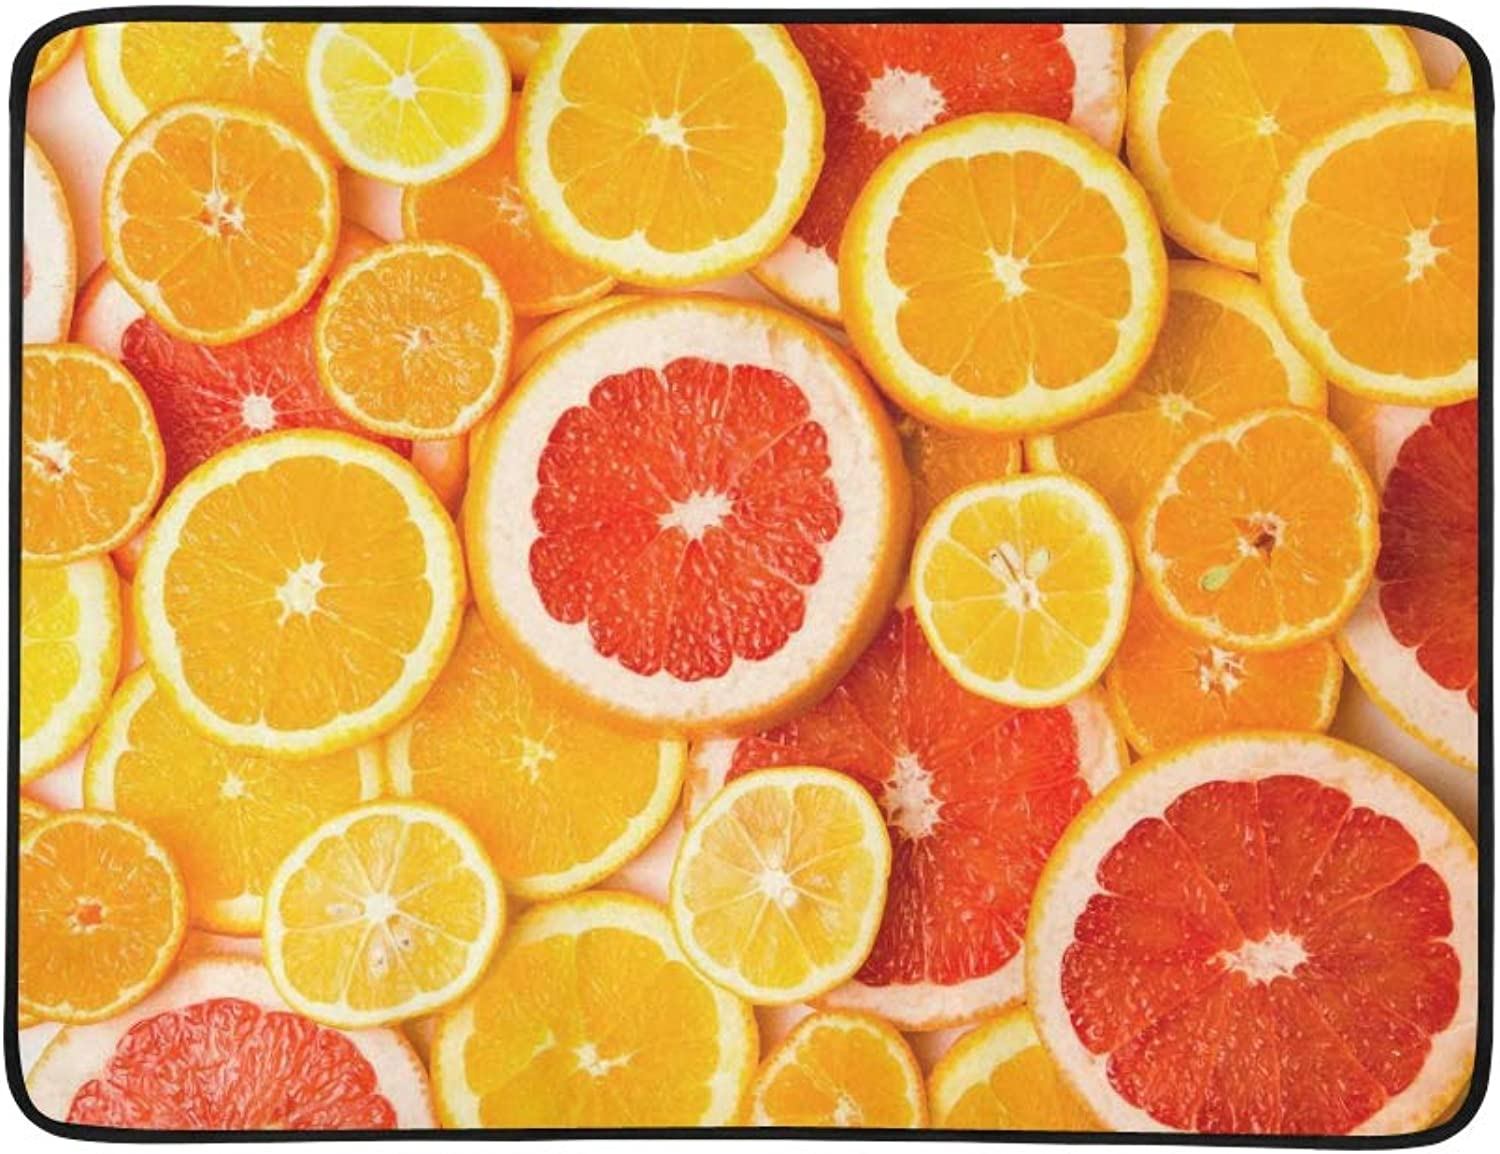 colorful Citrus Fruit Lemon orange Grapefruit Pattern Portable and Foldable Blanket Mat 60x78 Inch Handy Mat for Camping Picnic Beach Indoor Outdoor Travel